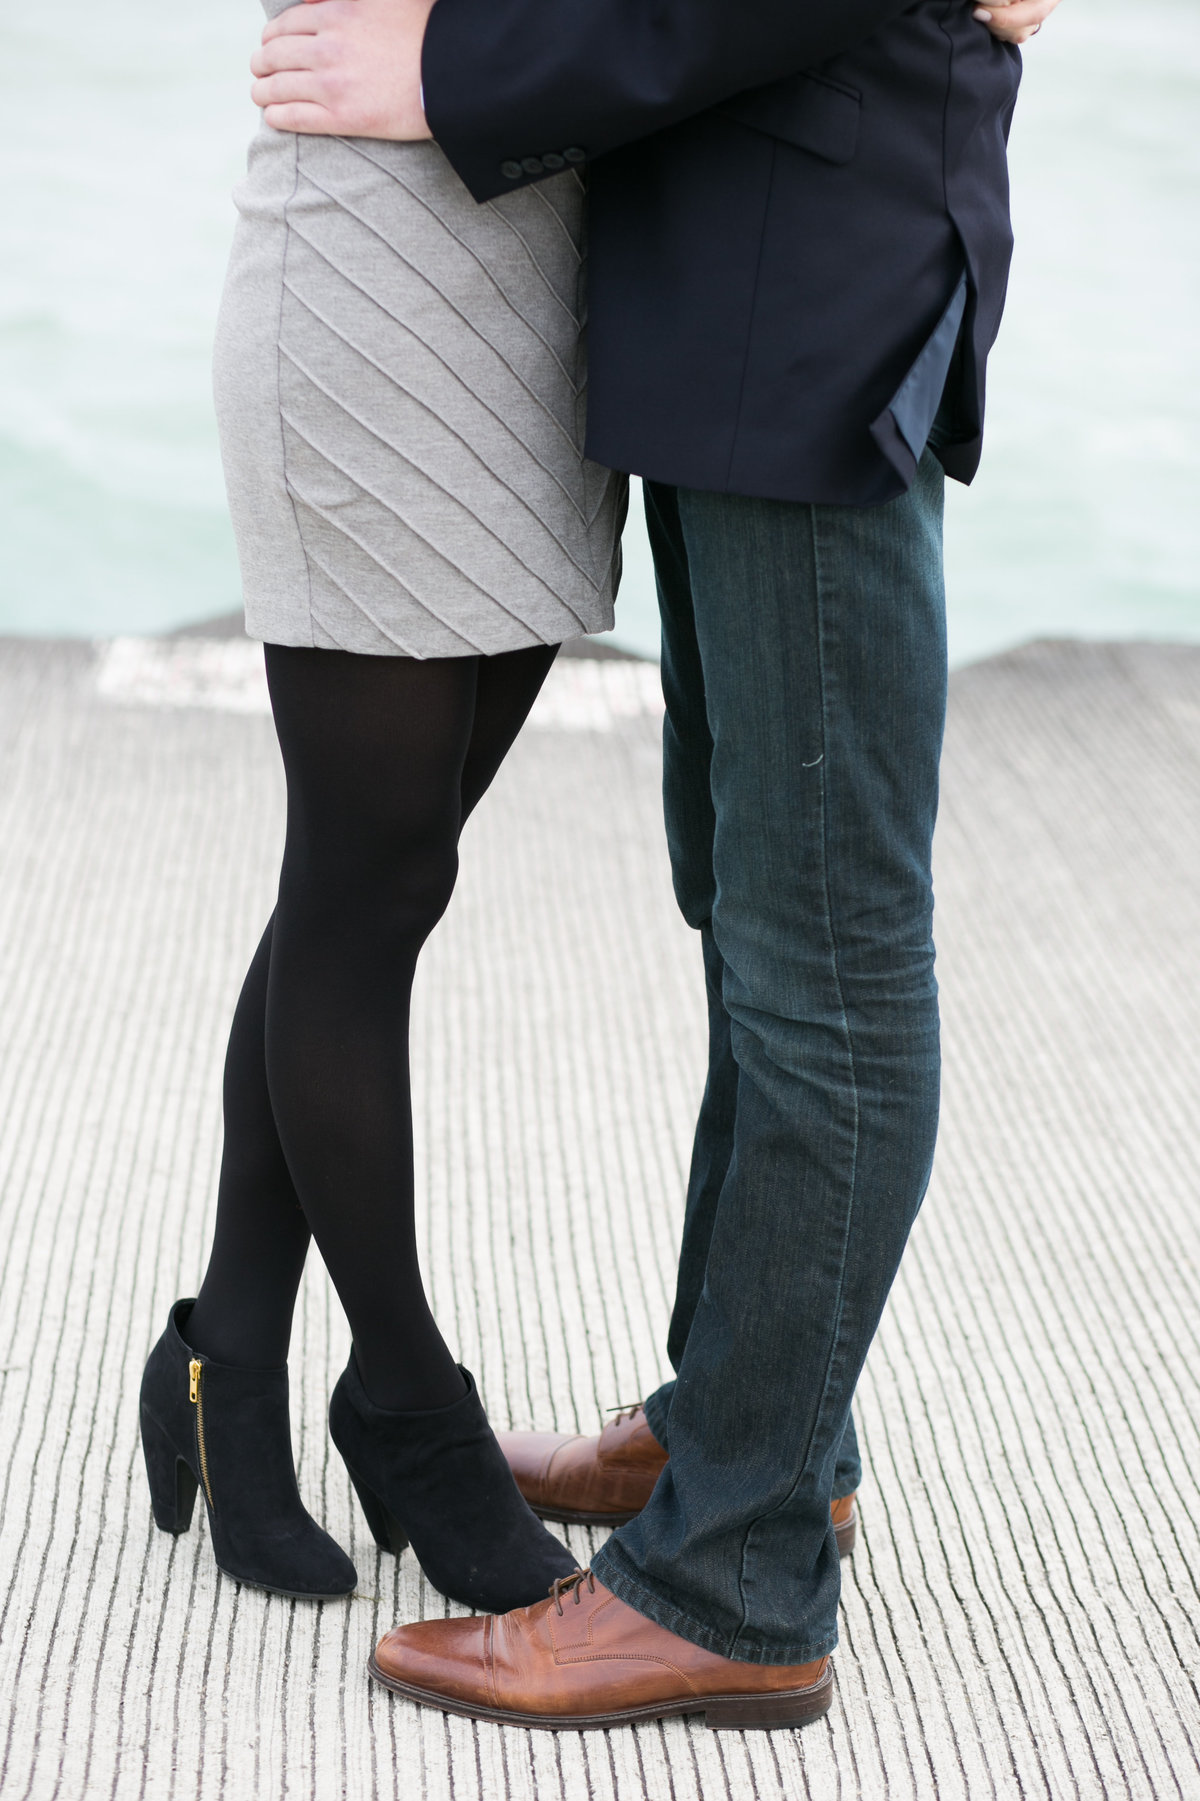 Montrose-Harbor-Engagement-03